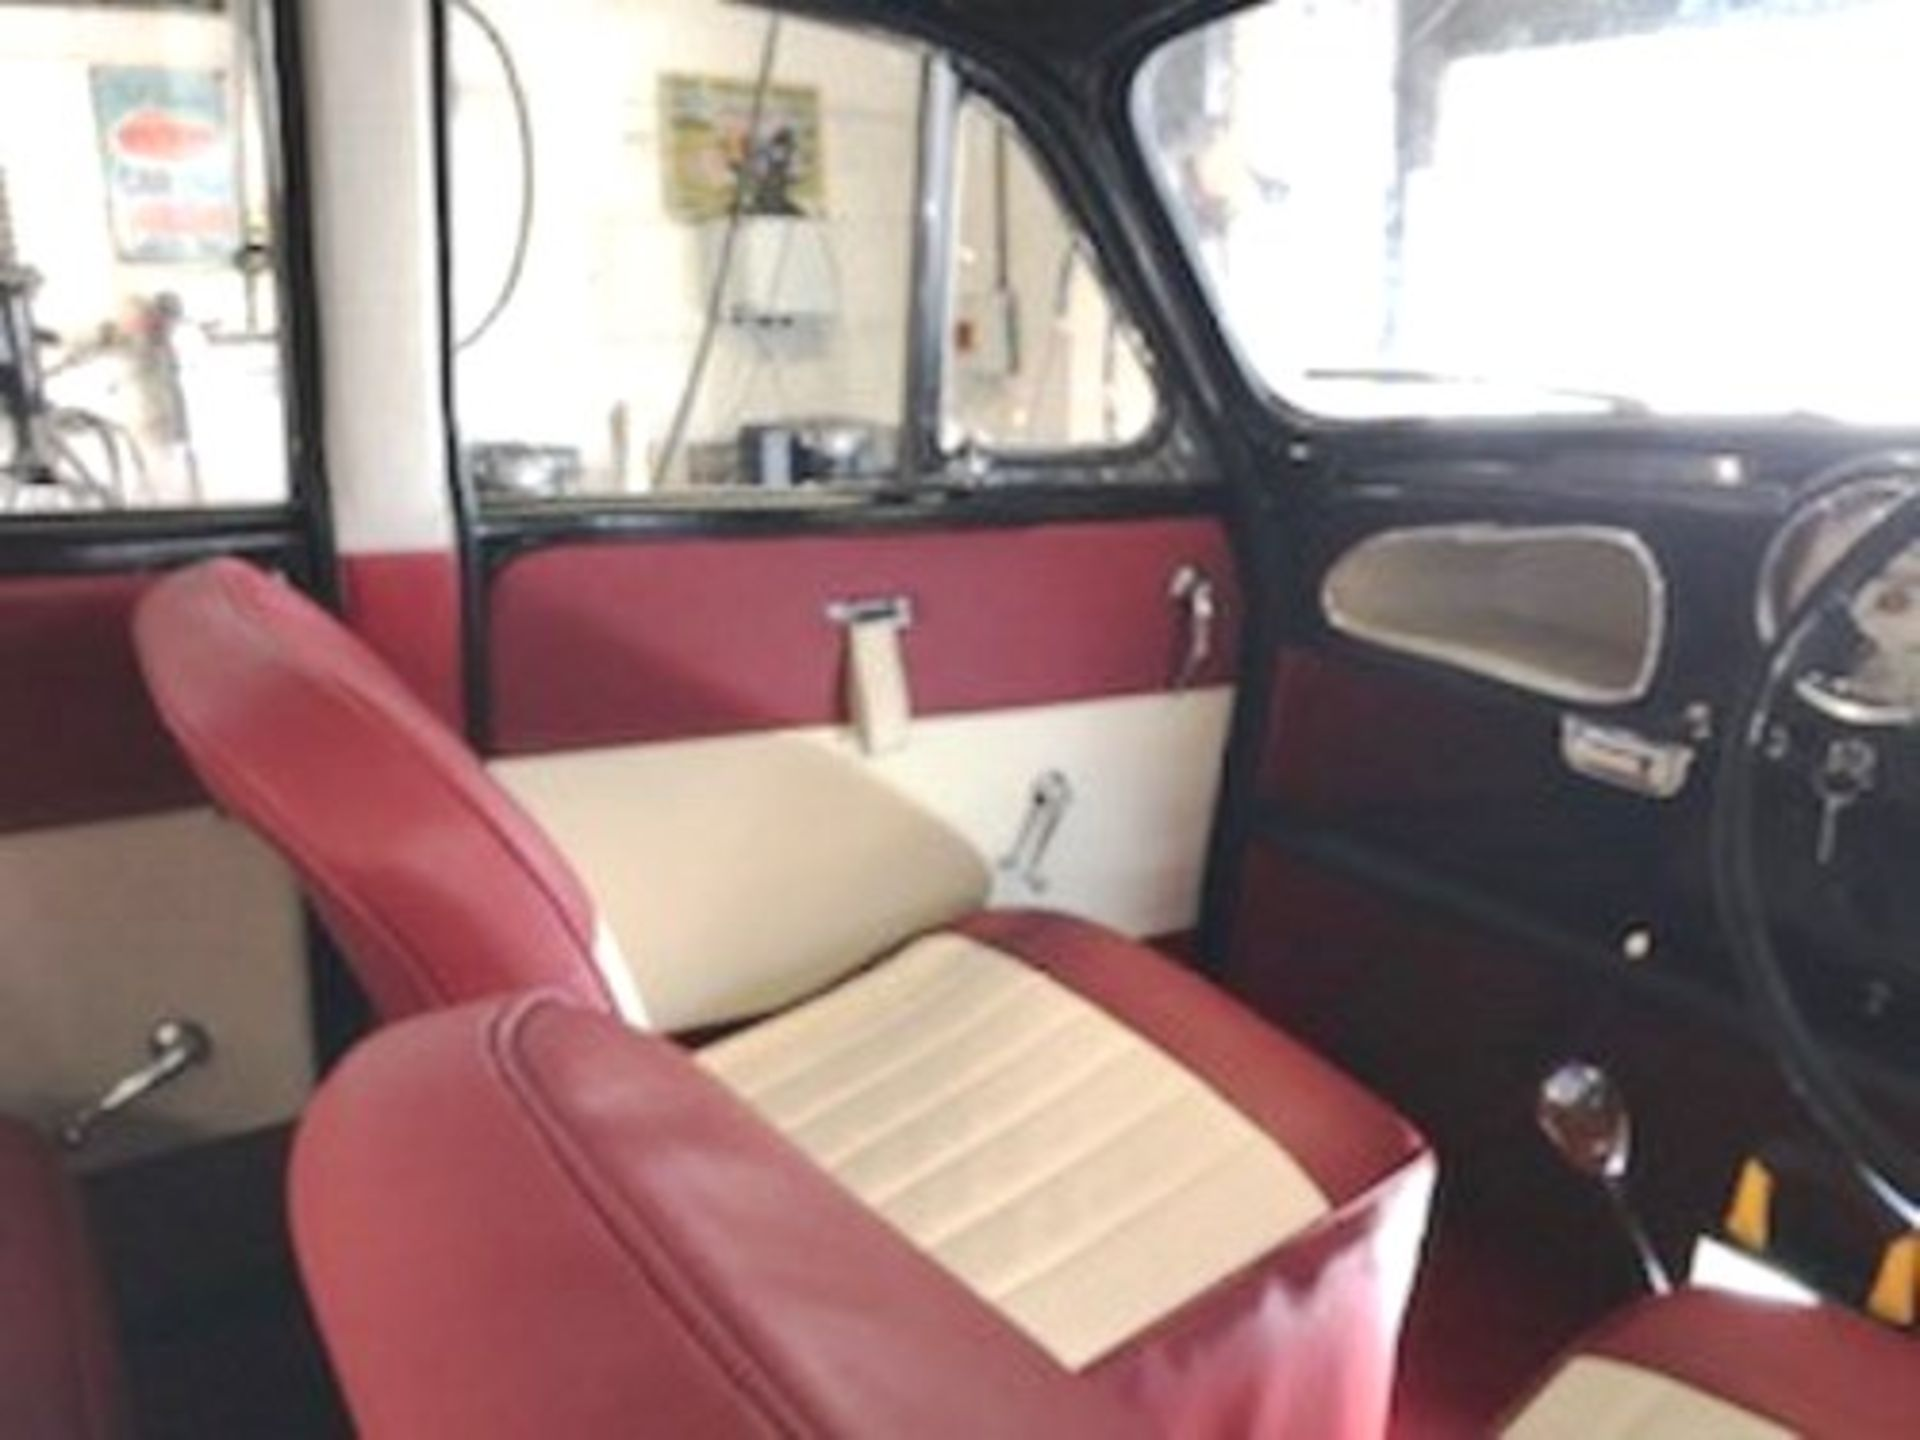 1964 Morris Minor 1000 in original black. The car has been restored with new flooring and vinyl - Image 9 of 16